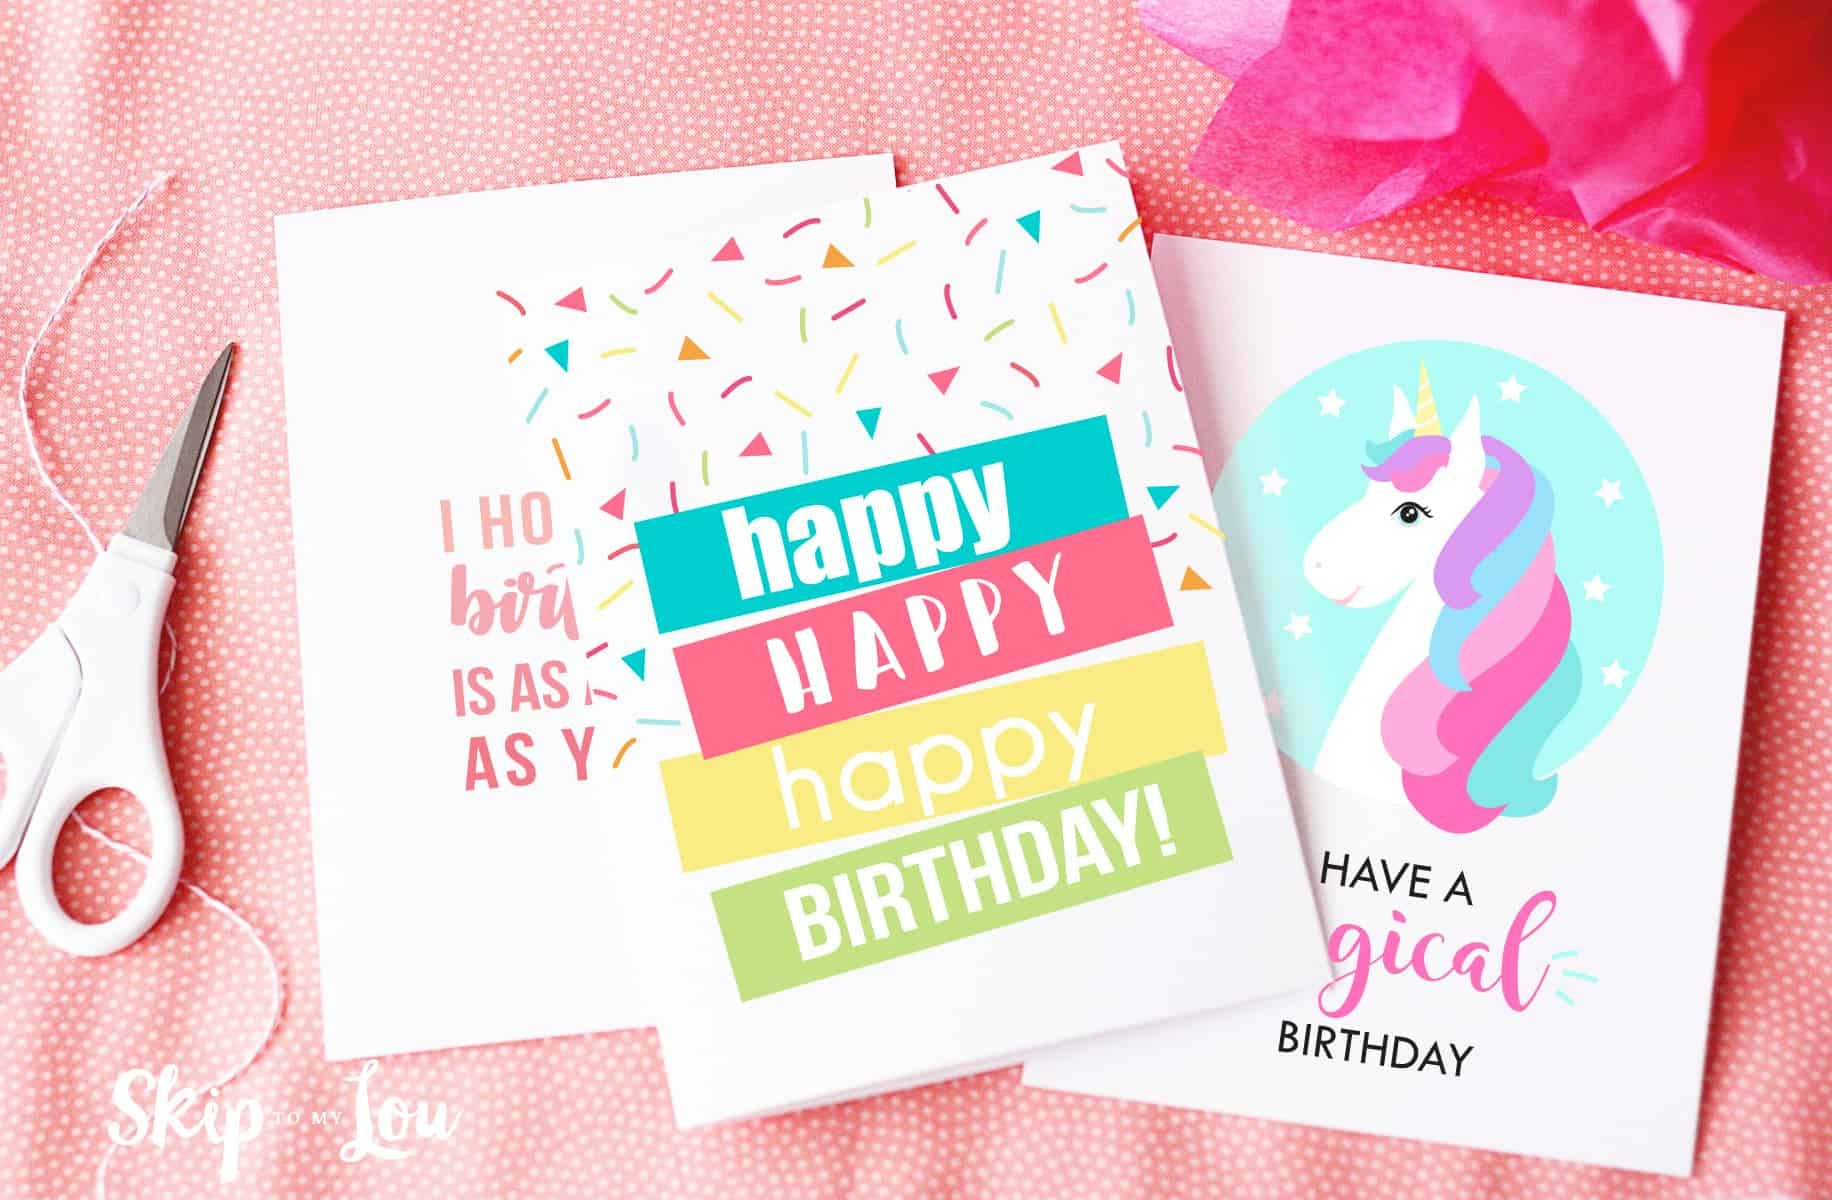 Free Printable Birthday Cards | Skip To My Lou - Free Printable Birthday Cards For Your Best Friend